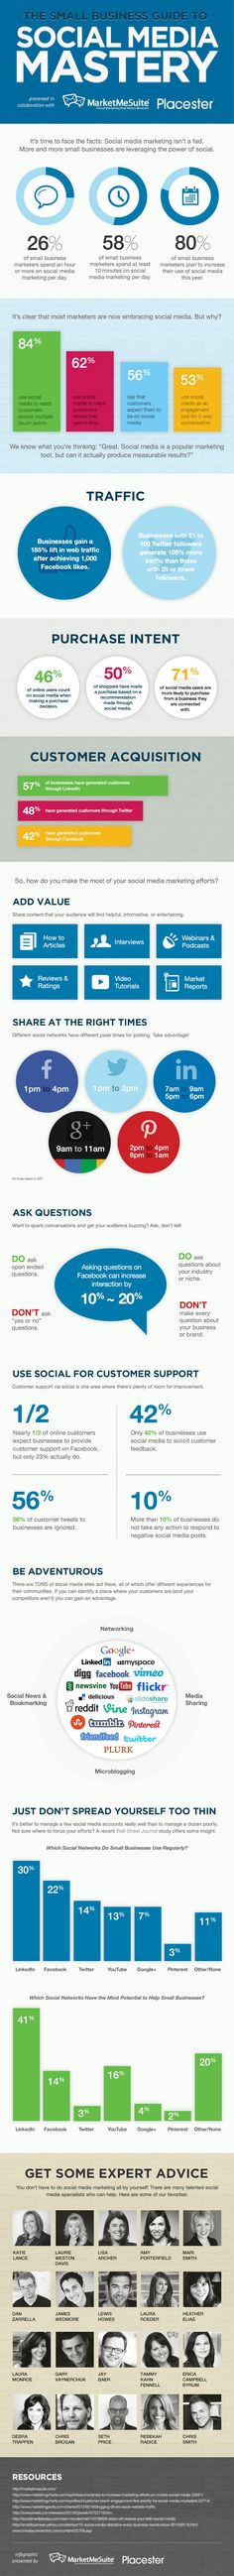 Small Business Guide To Social Media Mastery #infographic